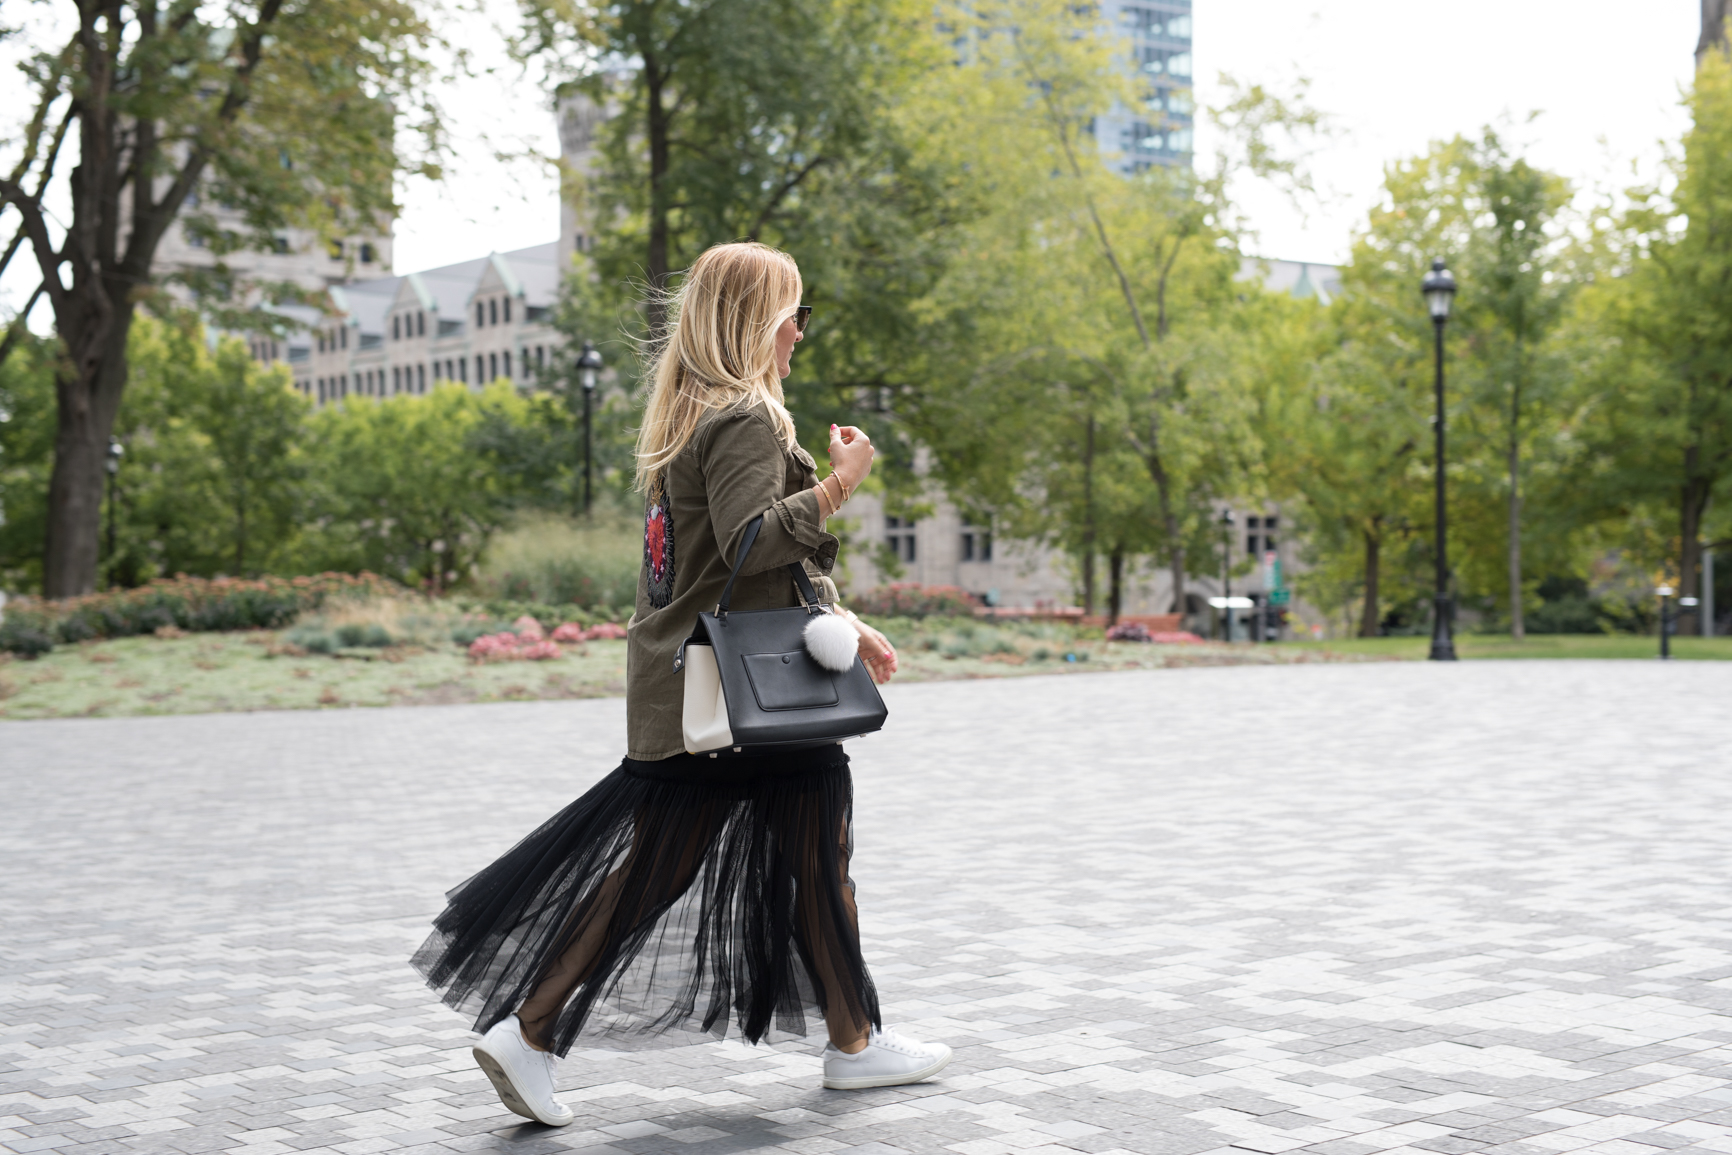 top trends fashion styling tips for fall winter by blogger mlle jules mademoiselle tule skirt sneakers